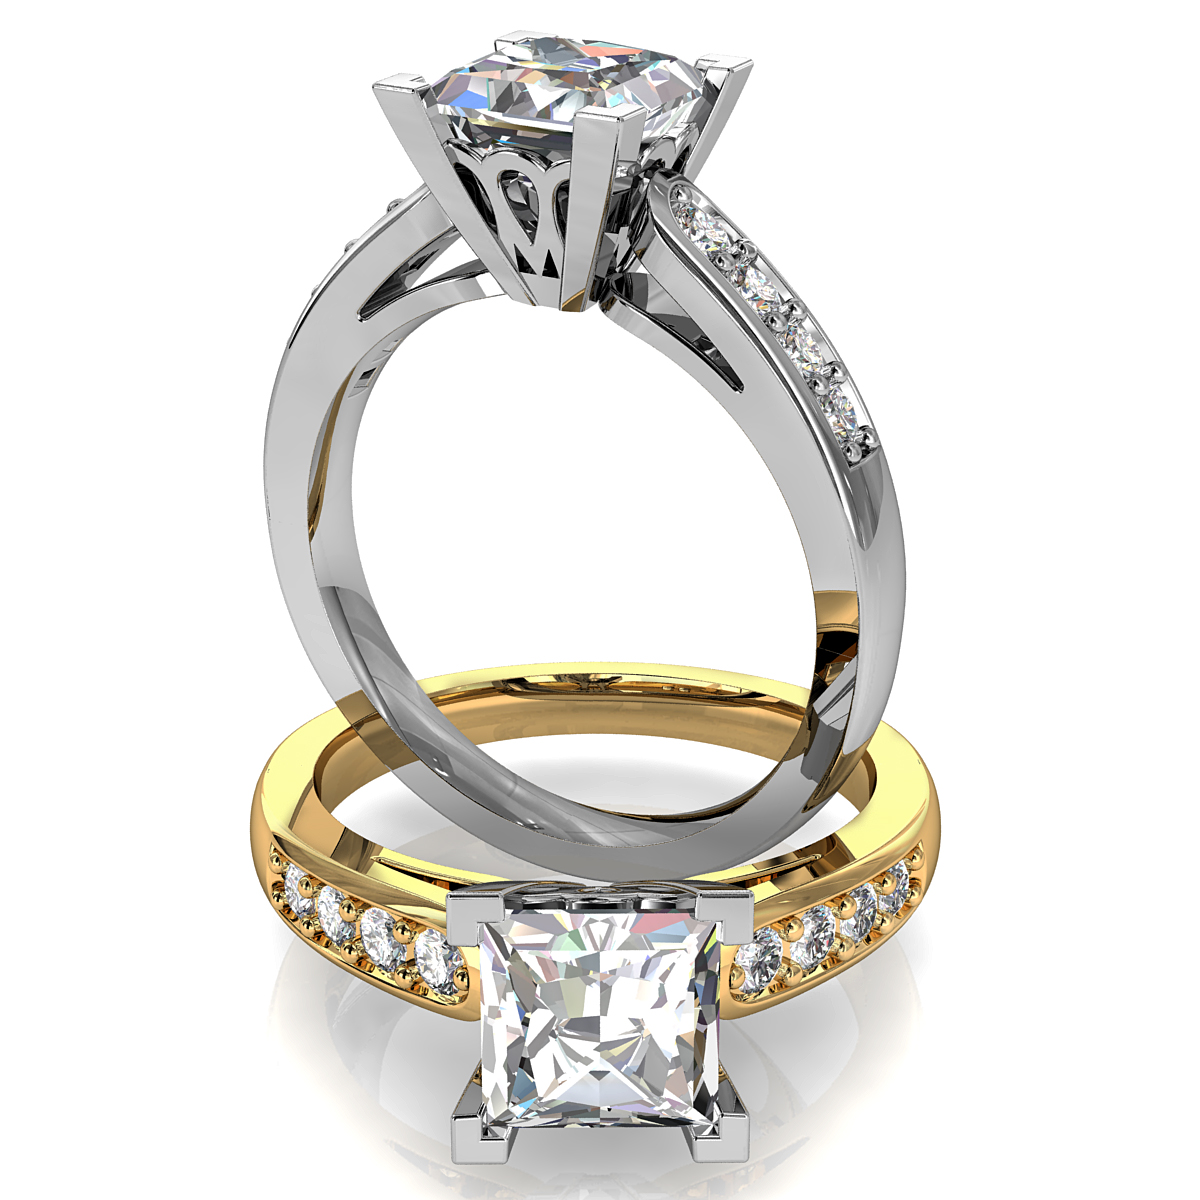 Princess Cut Solitaire Diamond Engagement Ring, 4 Corner Claws on a Bead Set Band with Lotus Support Bar.